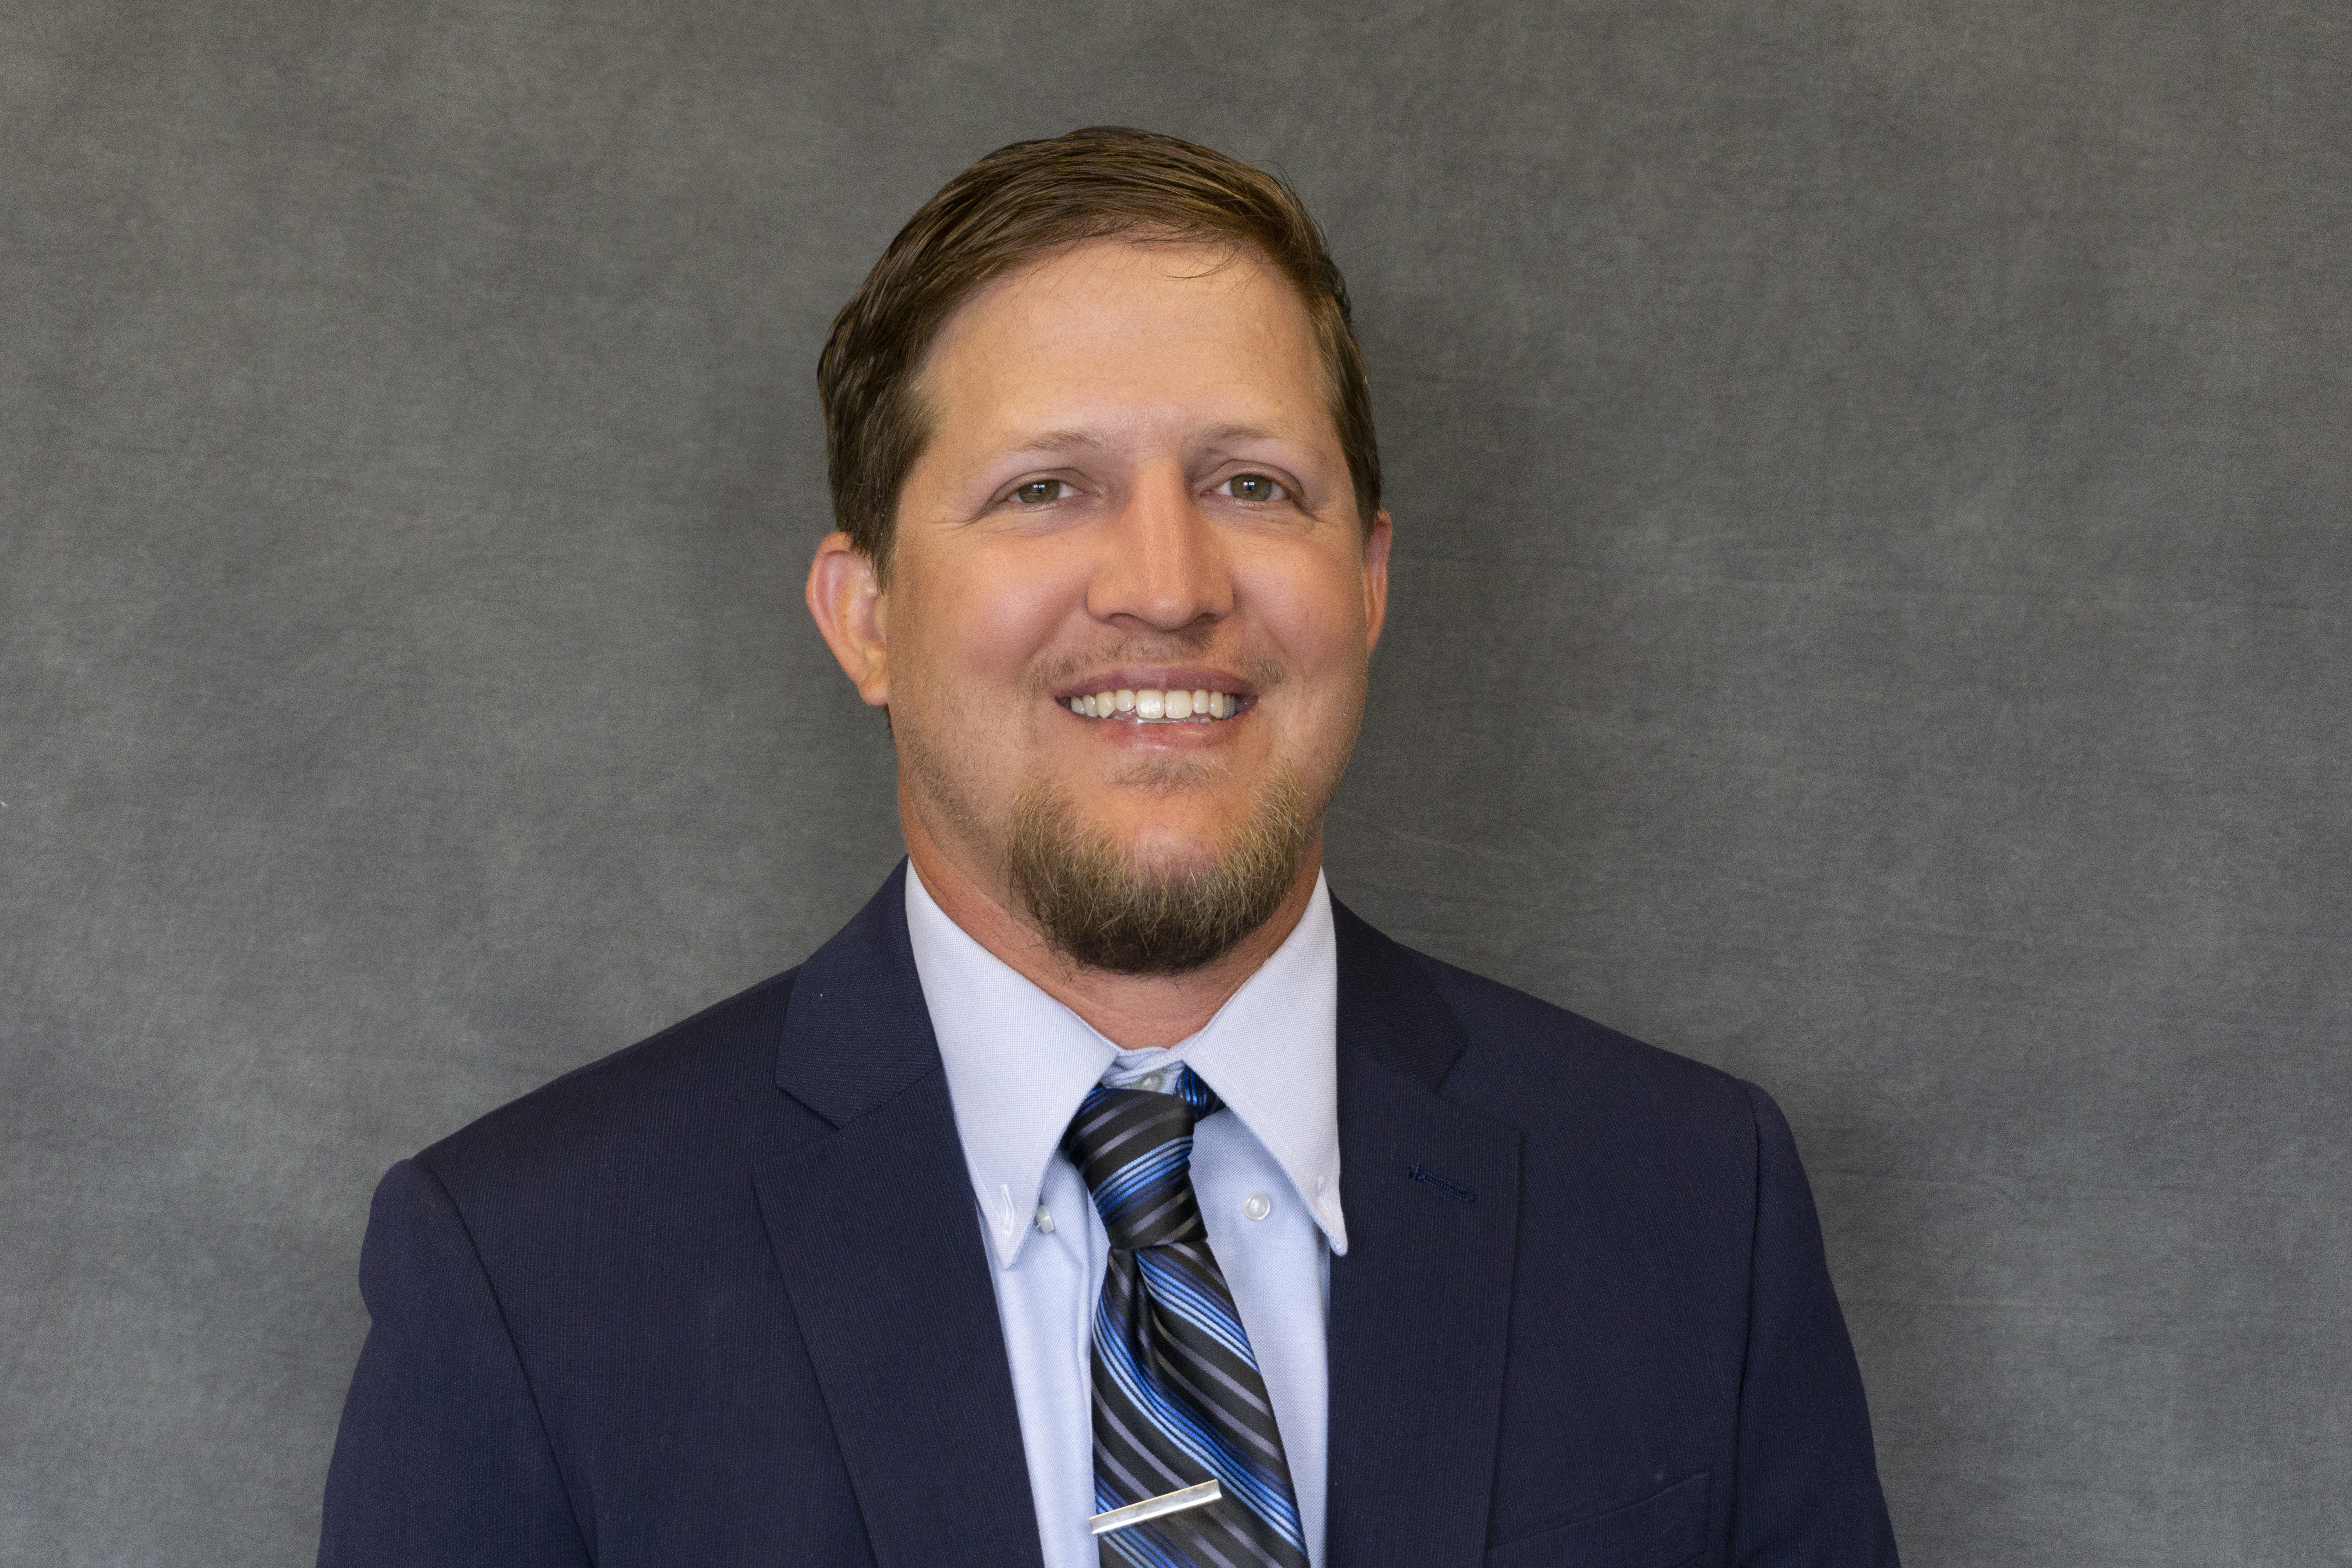 Artesian Valley Health System Welcomes New Provider – James Green, FNP-BC